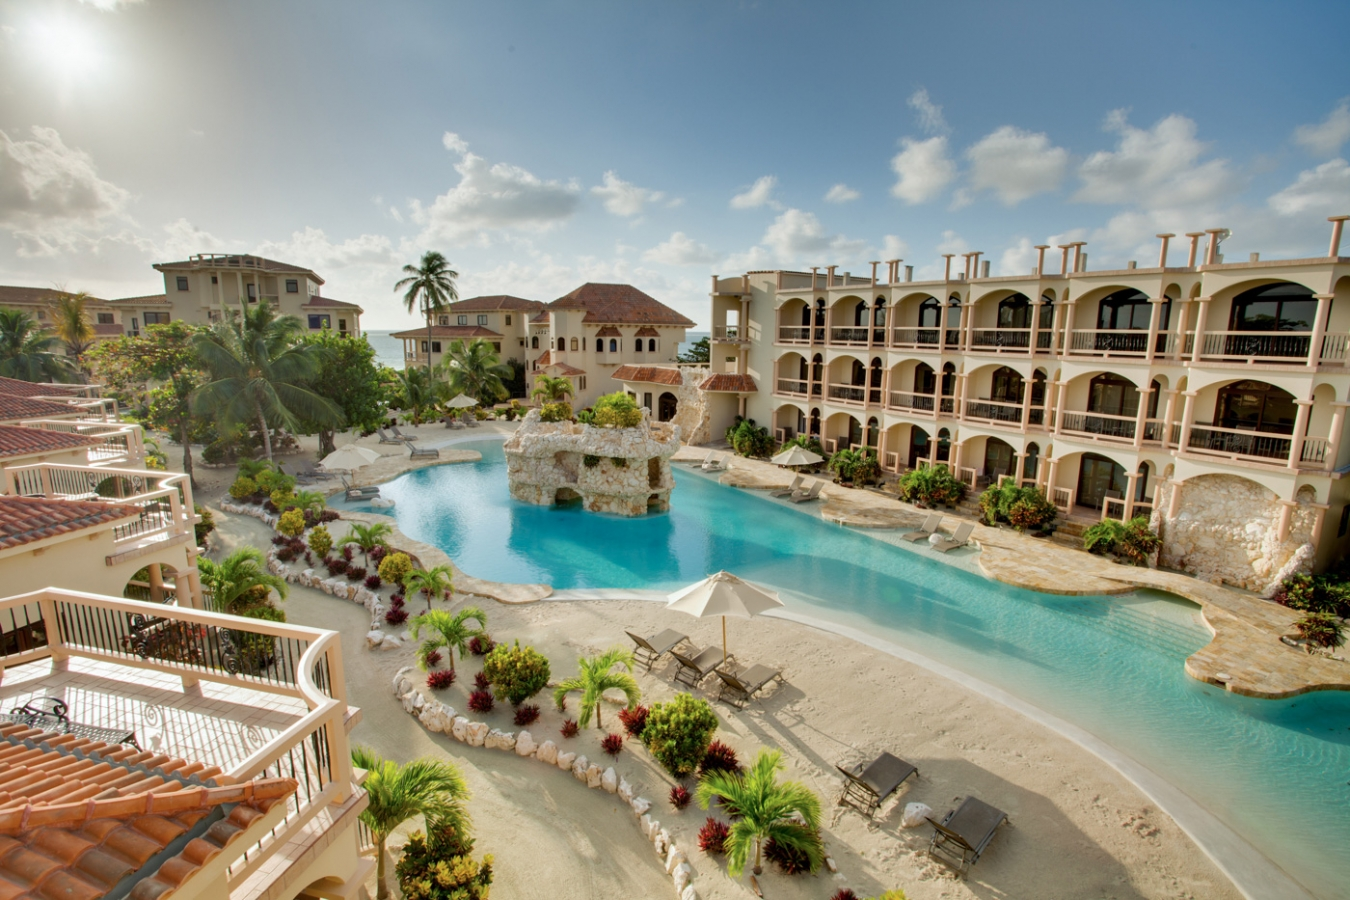 Hotels In Belize City With A Pool